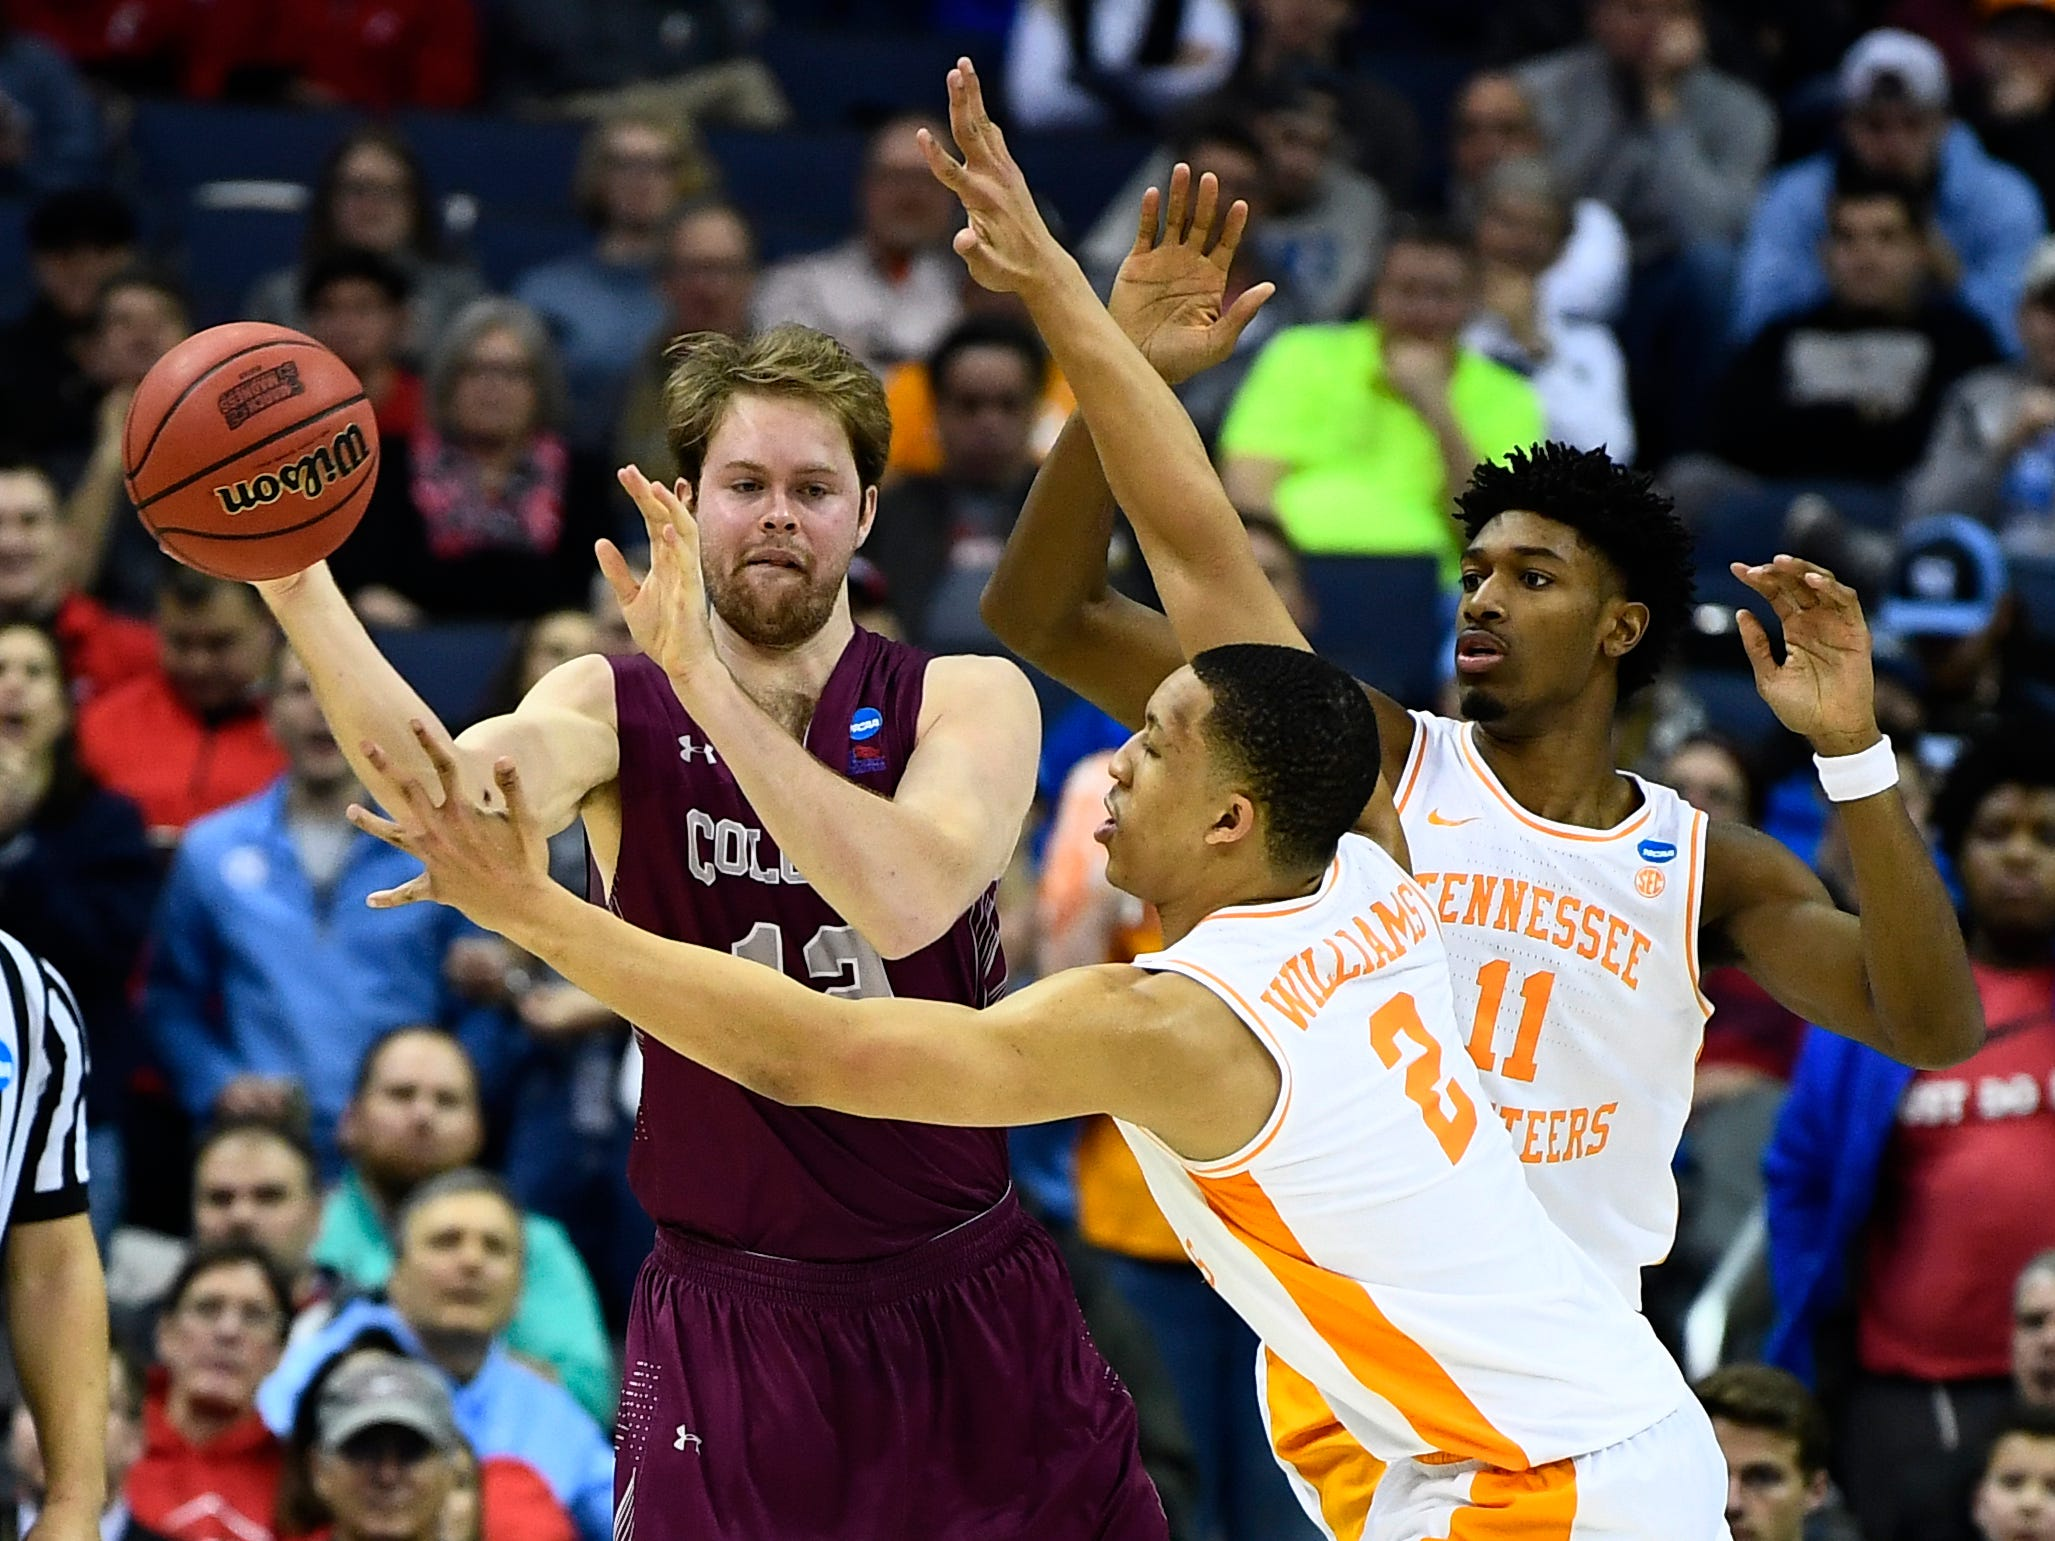 Colgate center Dana Batt (12) is surrounded by Tennessee forward Grant Williams (2) and forward Kyle Alexander (11) during their first round game in the NCAA Tournament at Nationwide Arena in Columbus, Ohio, on Friday, March 22, 2019.